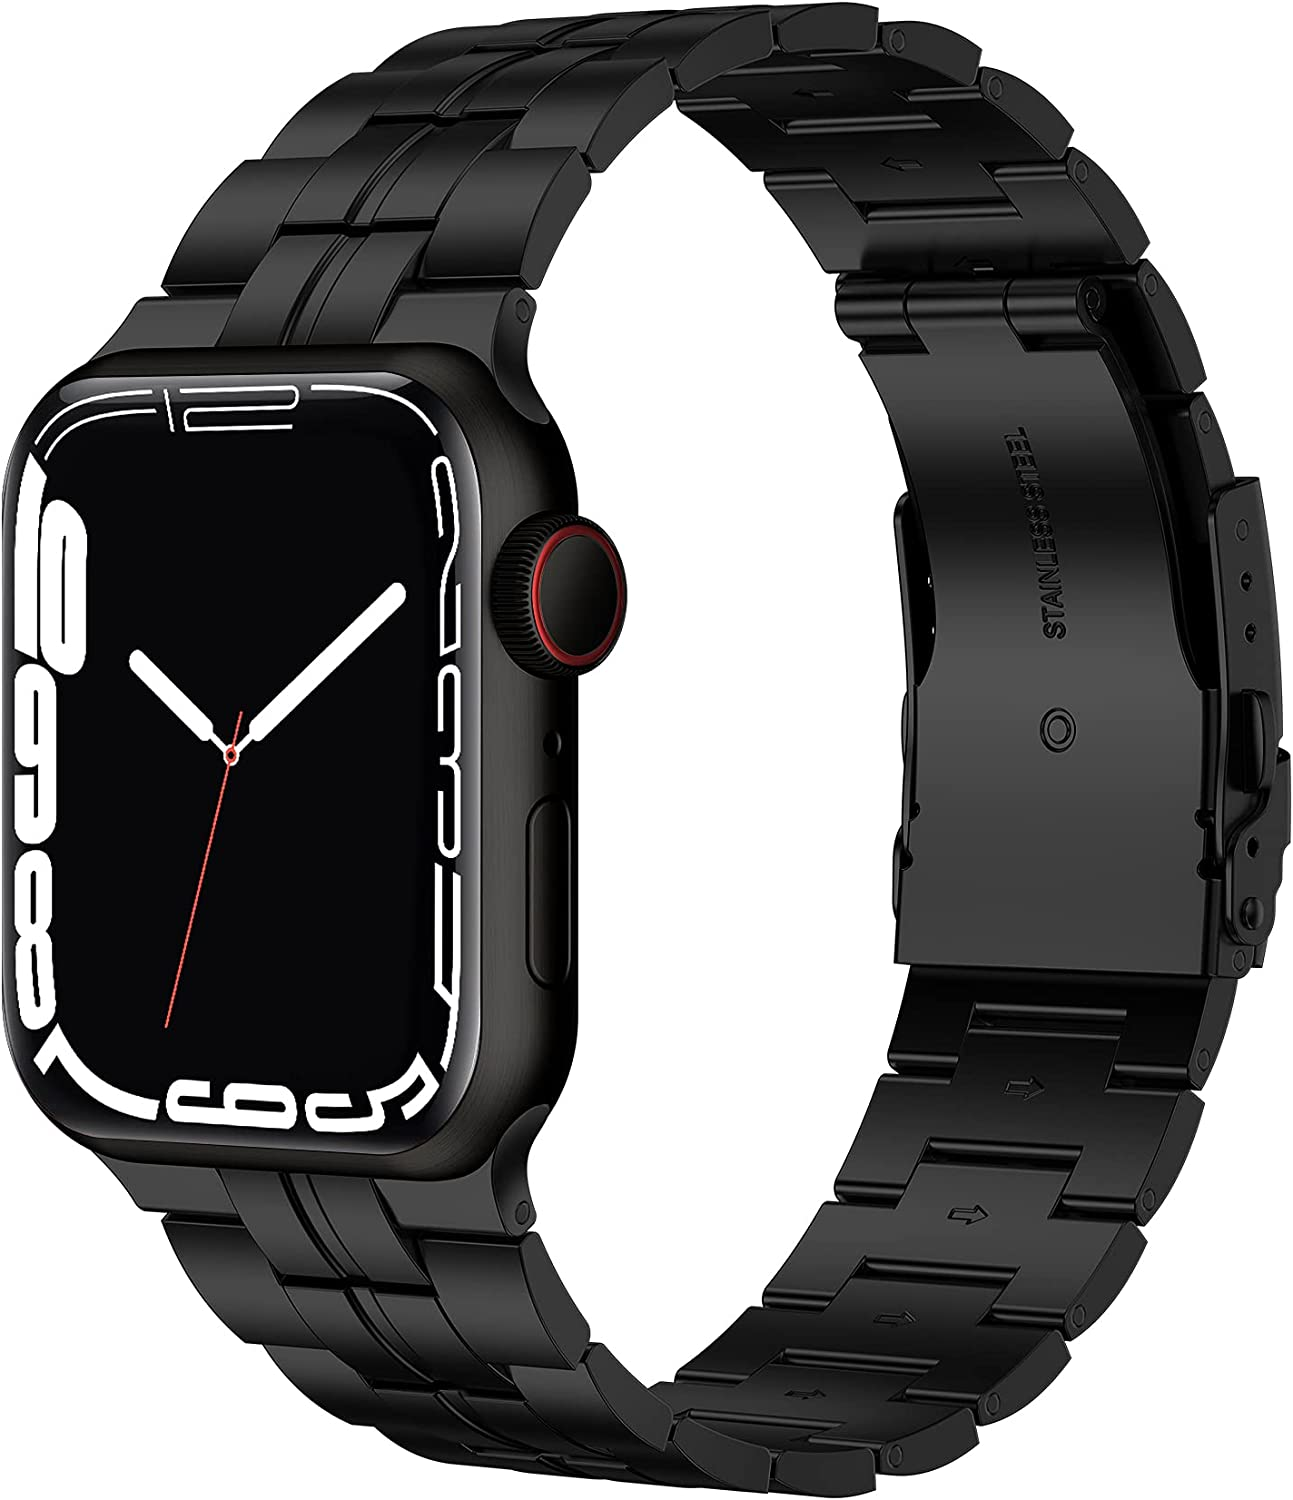 baozai Titanium Band Compatible with Apple Watch 45mm 44mm 42mm, Upgraded Solid Titanium Wristband for Apple Watch Series 7/6/5/4/3/2/1/SE Men Sports Business